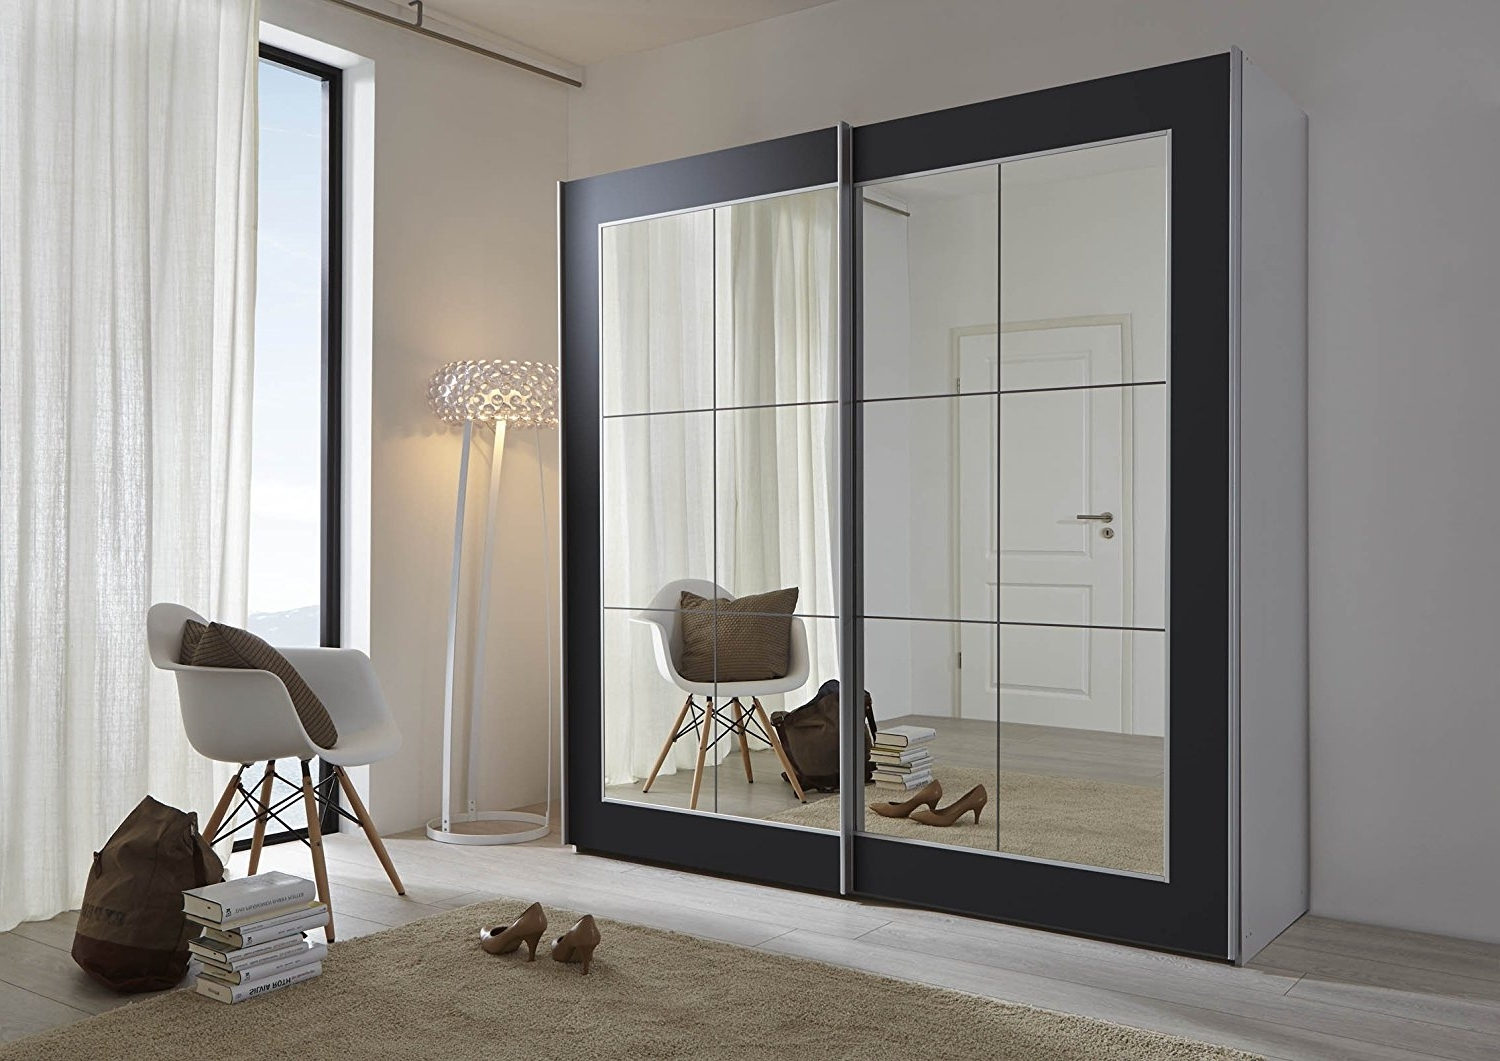 Schlafzimmer Lattice: Black Sliding Door Wardrobe With Mirror Regarding Well Liked Wardrobes With Mirror (View 10 of 15)